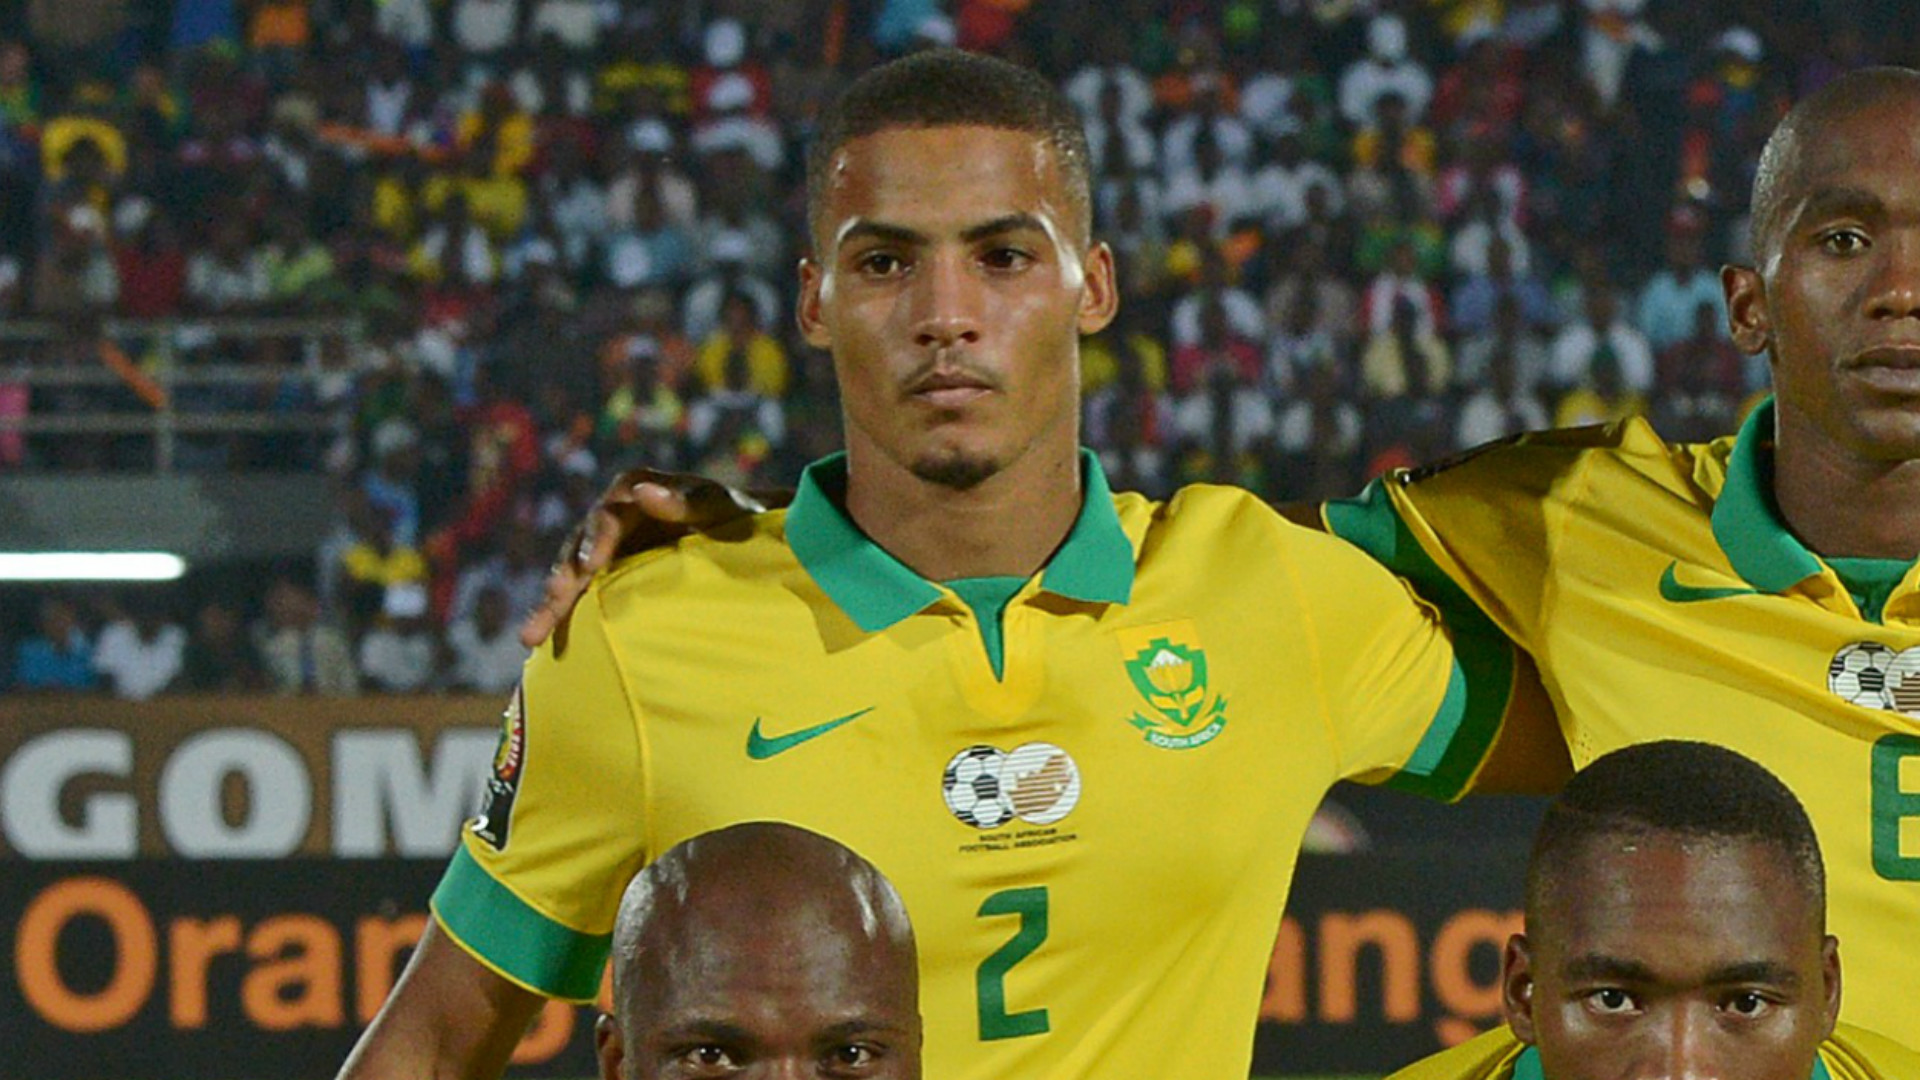 AFCON 2019 Qualifiers: Bafana Bafana Beat Super Eagles 2-0